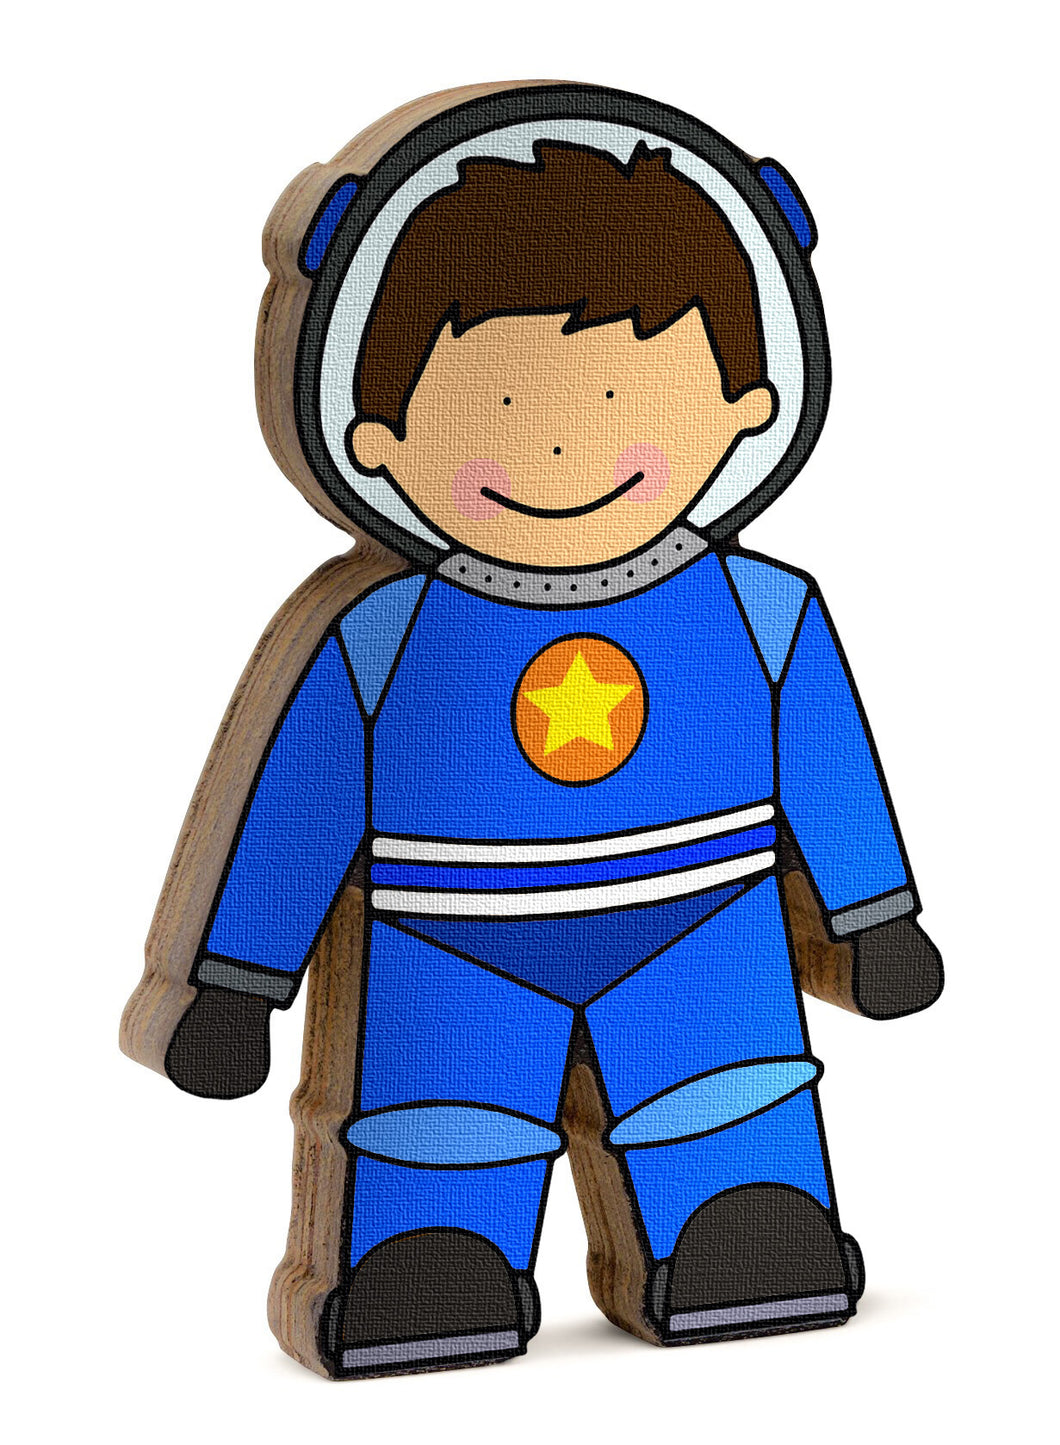 Astronaut wooden shelfie dressed in his blue space suit